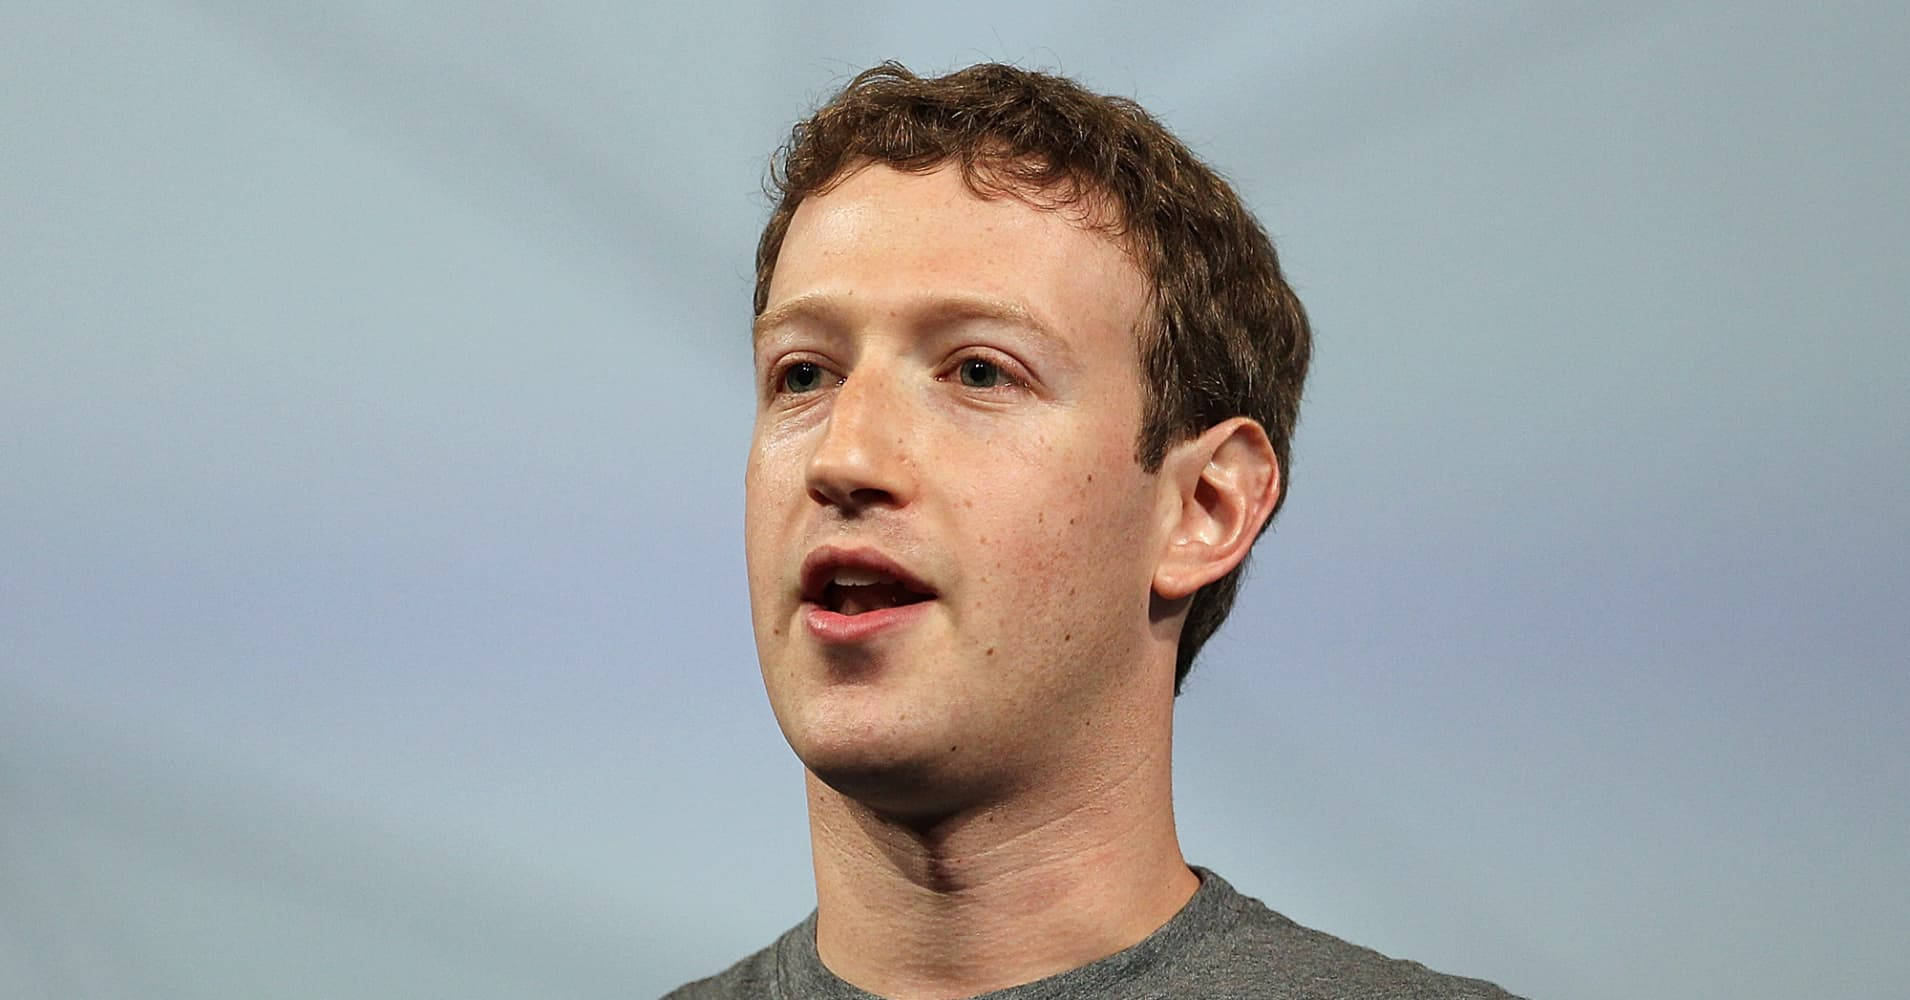 http://www.cnbc.com/2015/10/26/facebooks-internetorg-is-a-tough-sell-in-india.html